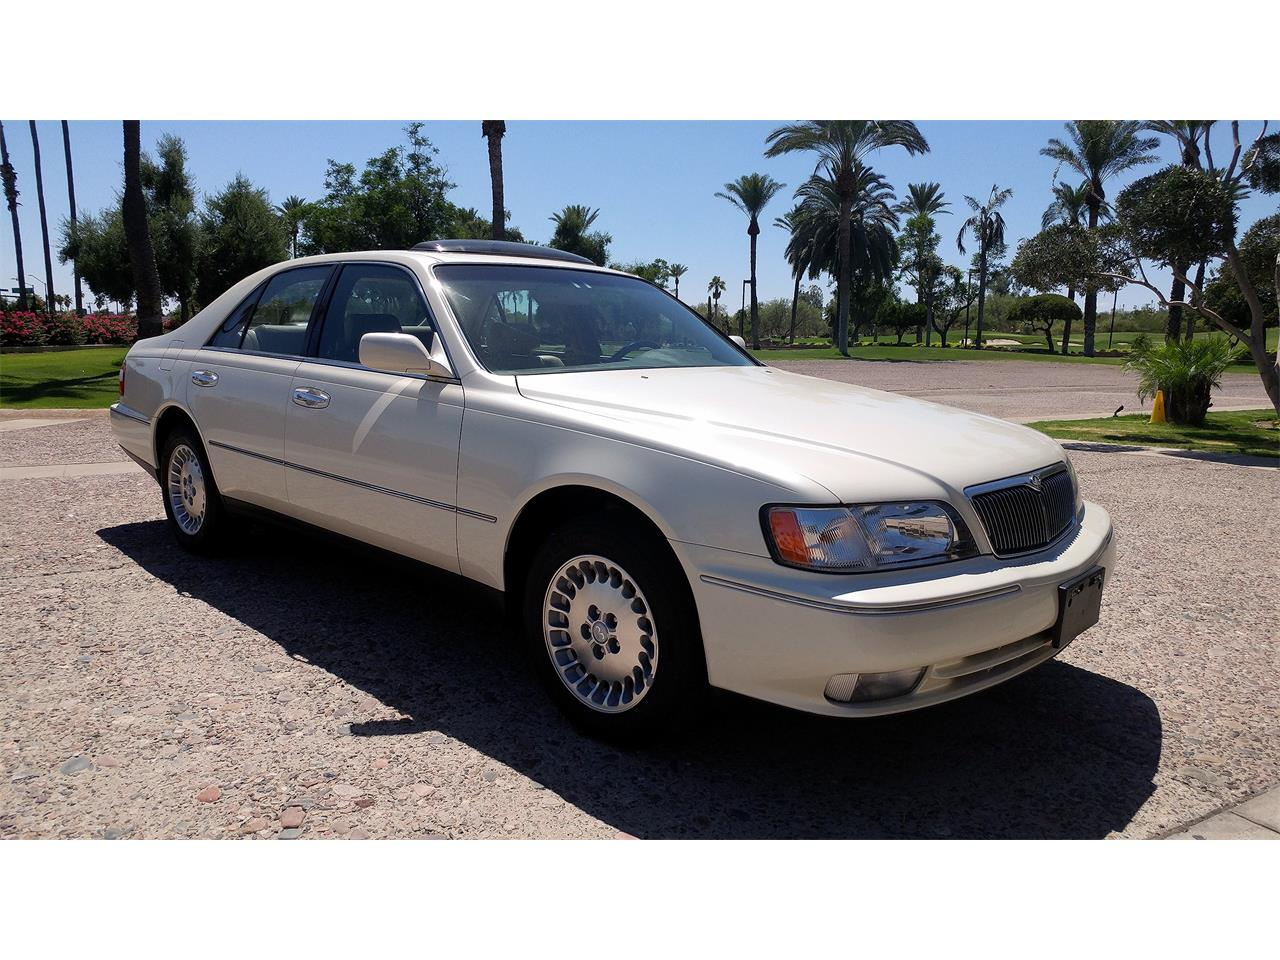 1998 Infiniti Q45 (CC-1385125) for sale in Phoenix, Arizona